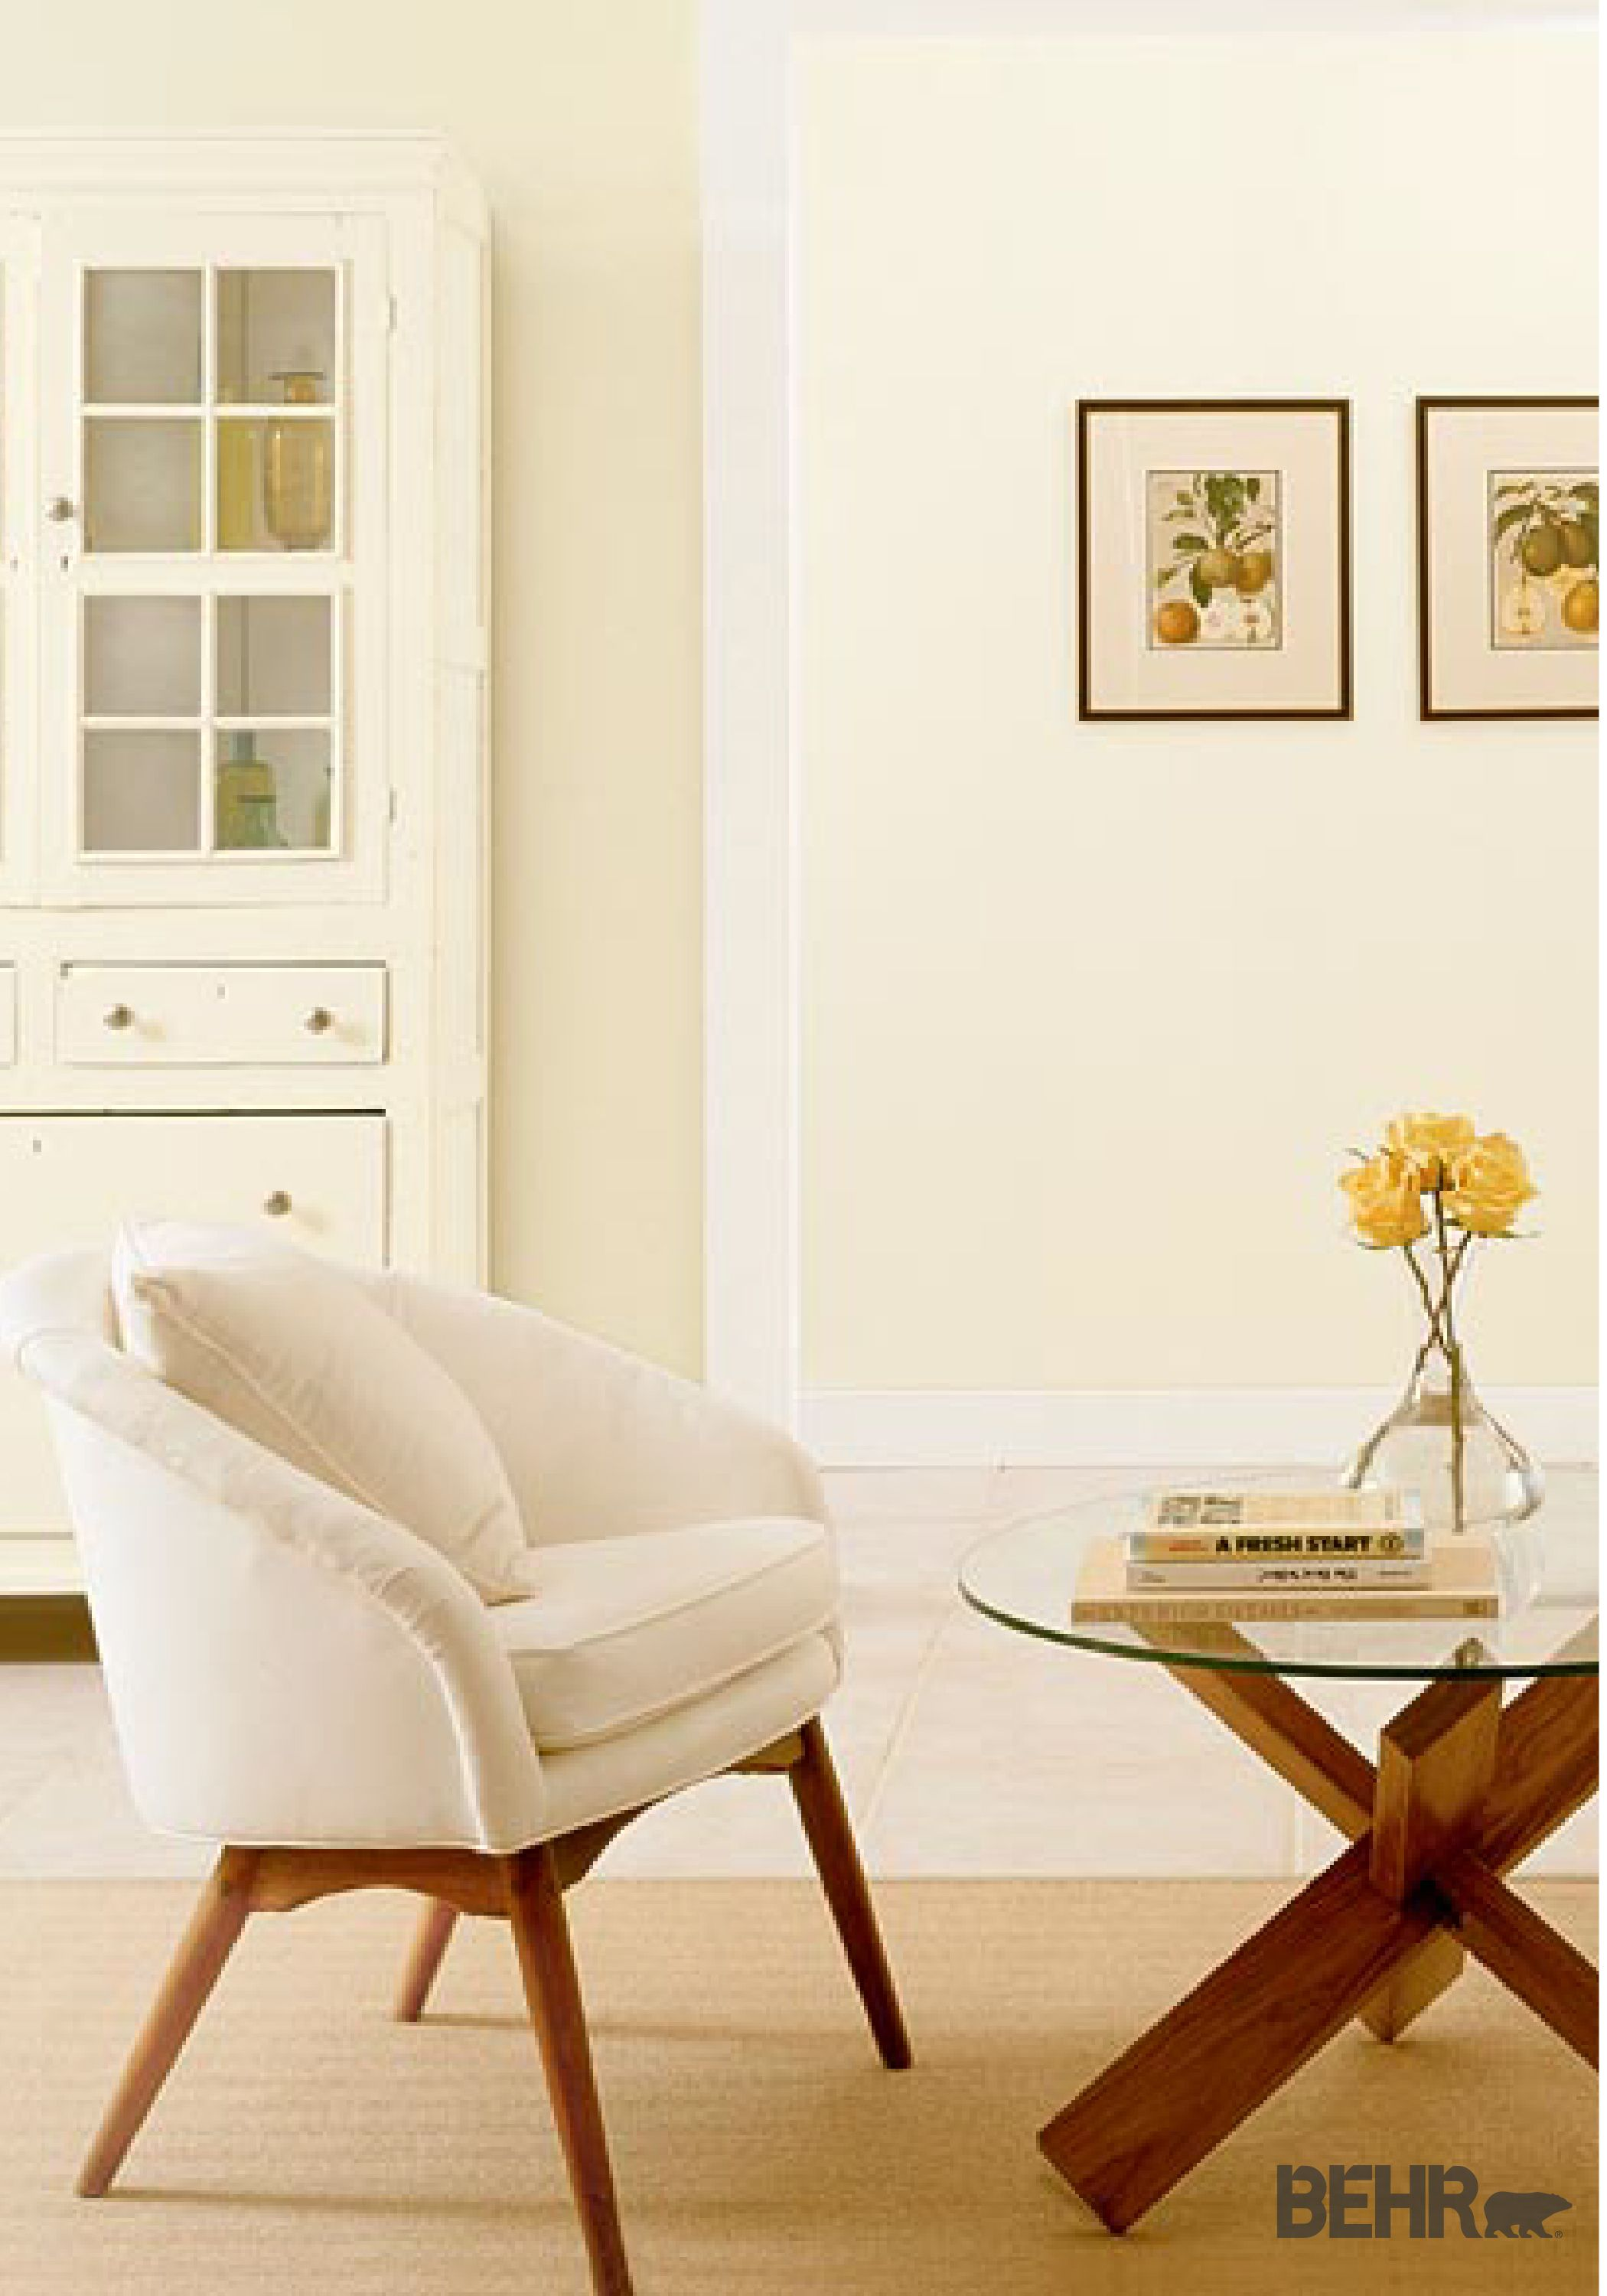 Warm And Ery A Subtle Coat Of Yellow Paint In Any Room Your Home Is Sure To Add Comforting Twist By Adding Behr Rainforest Dew White